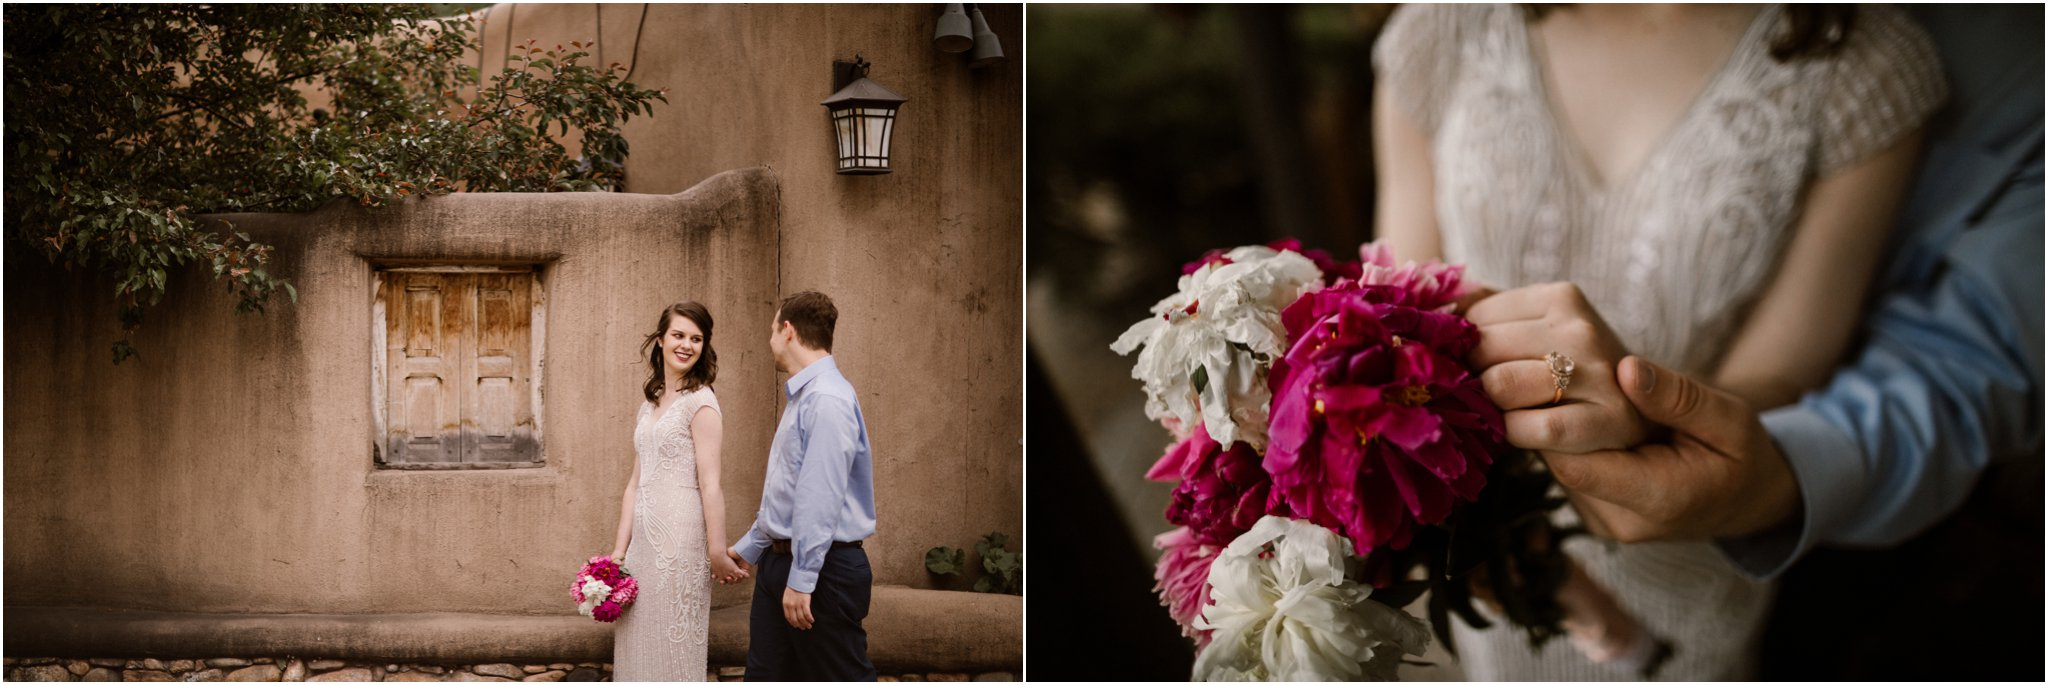 0015Loretto Chapel Wedding_Santa Fe New Mexico Wedding Photographer, Blue Rose Wedding Photography